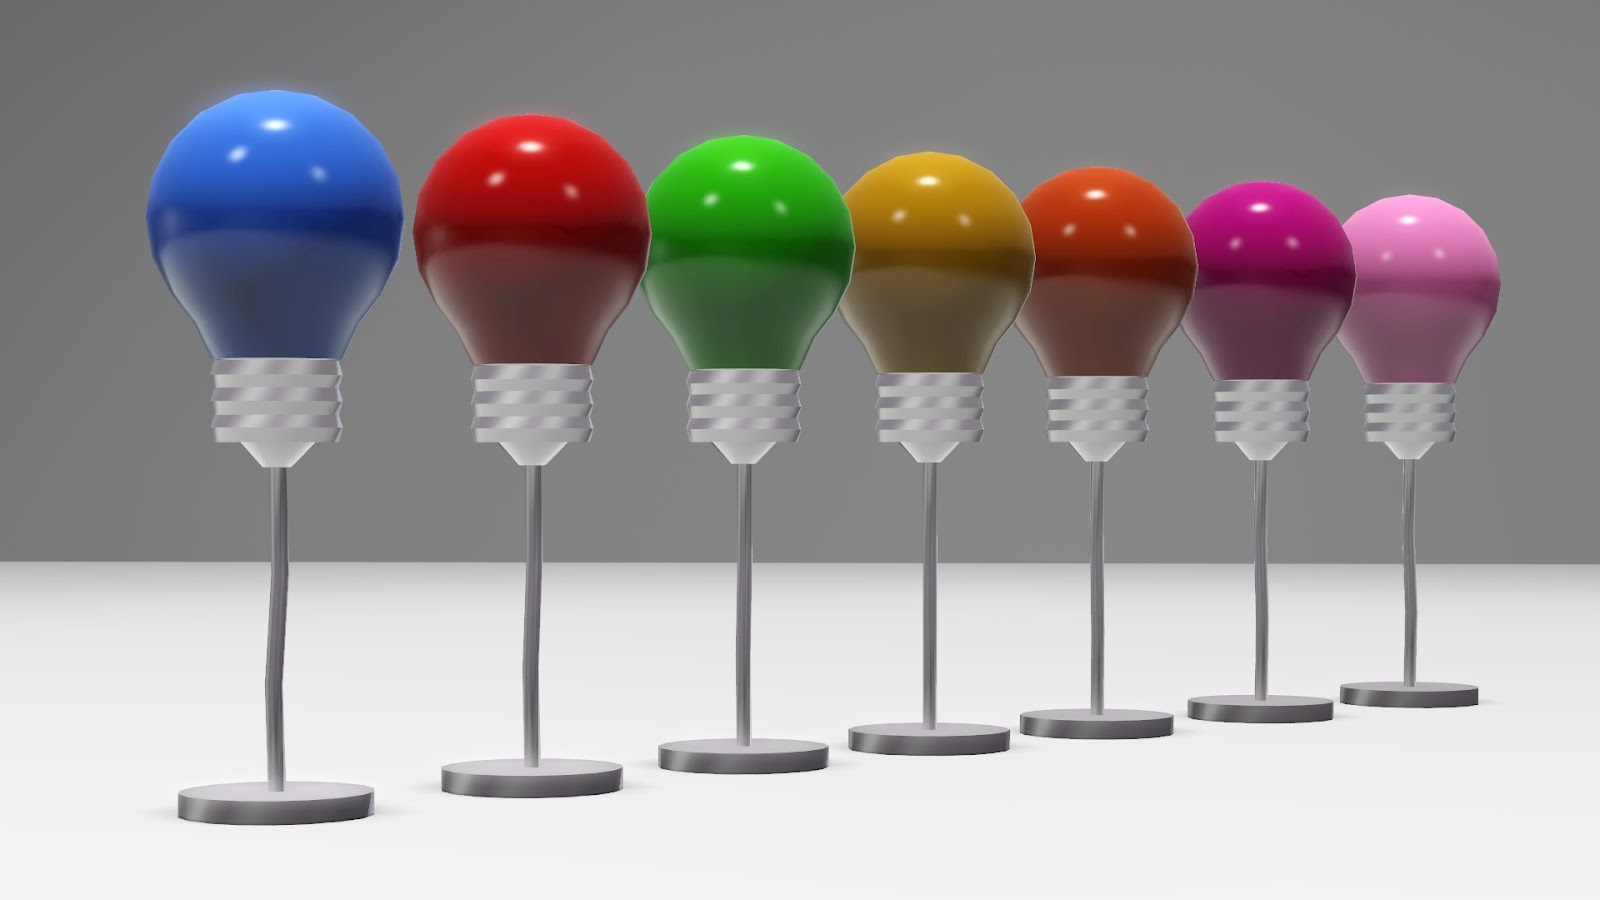 empire sims 3 light bulb lamp by fresh prince. Black Bedroom Furniture Sets. Home Design Ideas